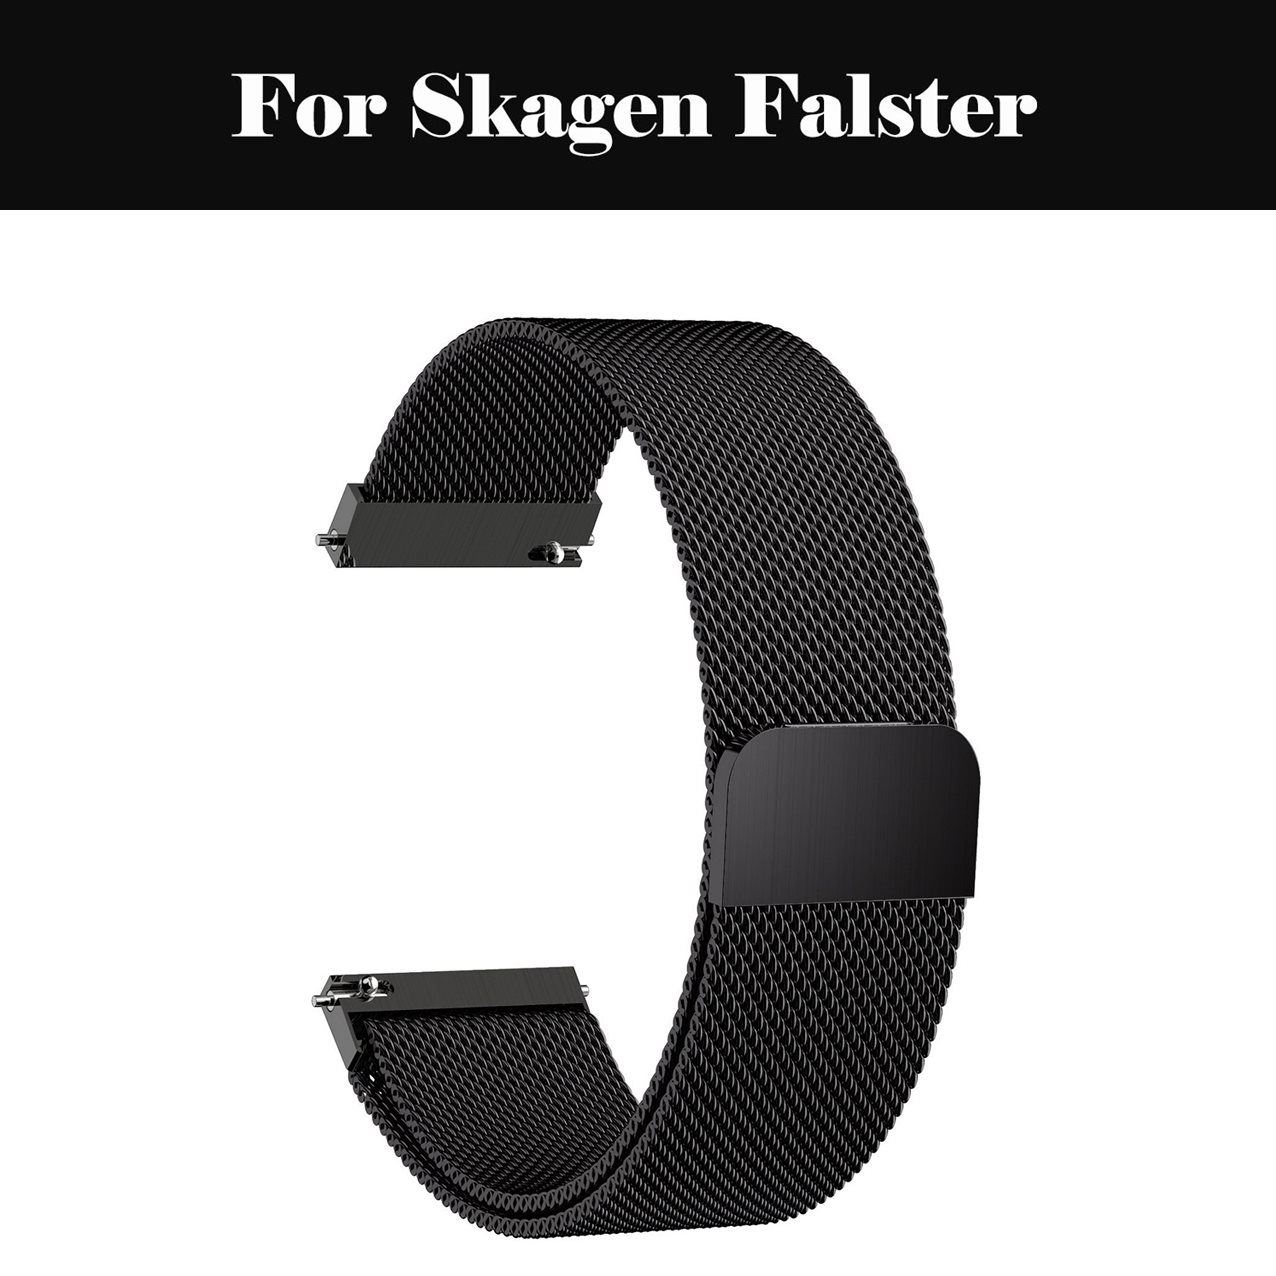 Milanese Loop Strap Bands Stainless Steel Watchbands With Magnetic Closure For Skagen Falster